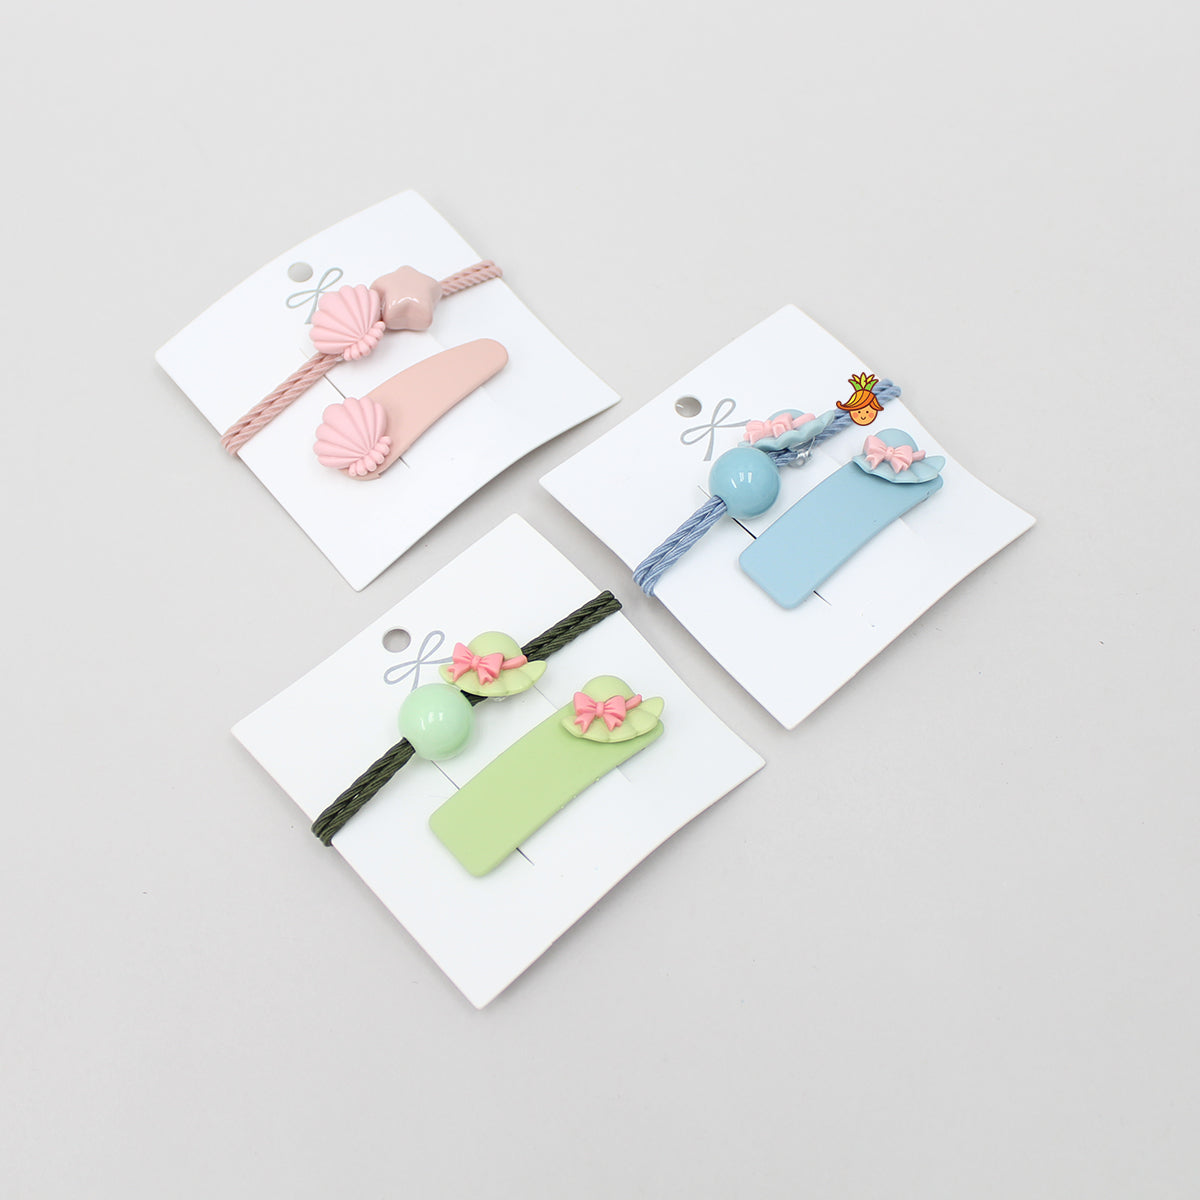 Cute 3 Hair Tie And 3 Hair Clip Set - 4